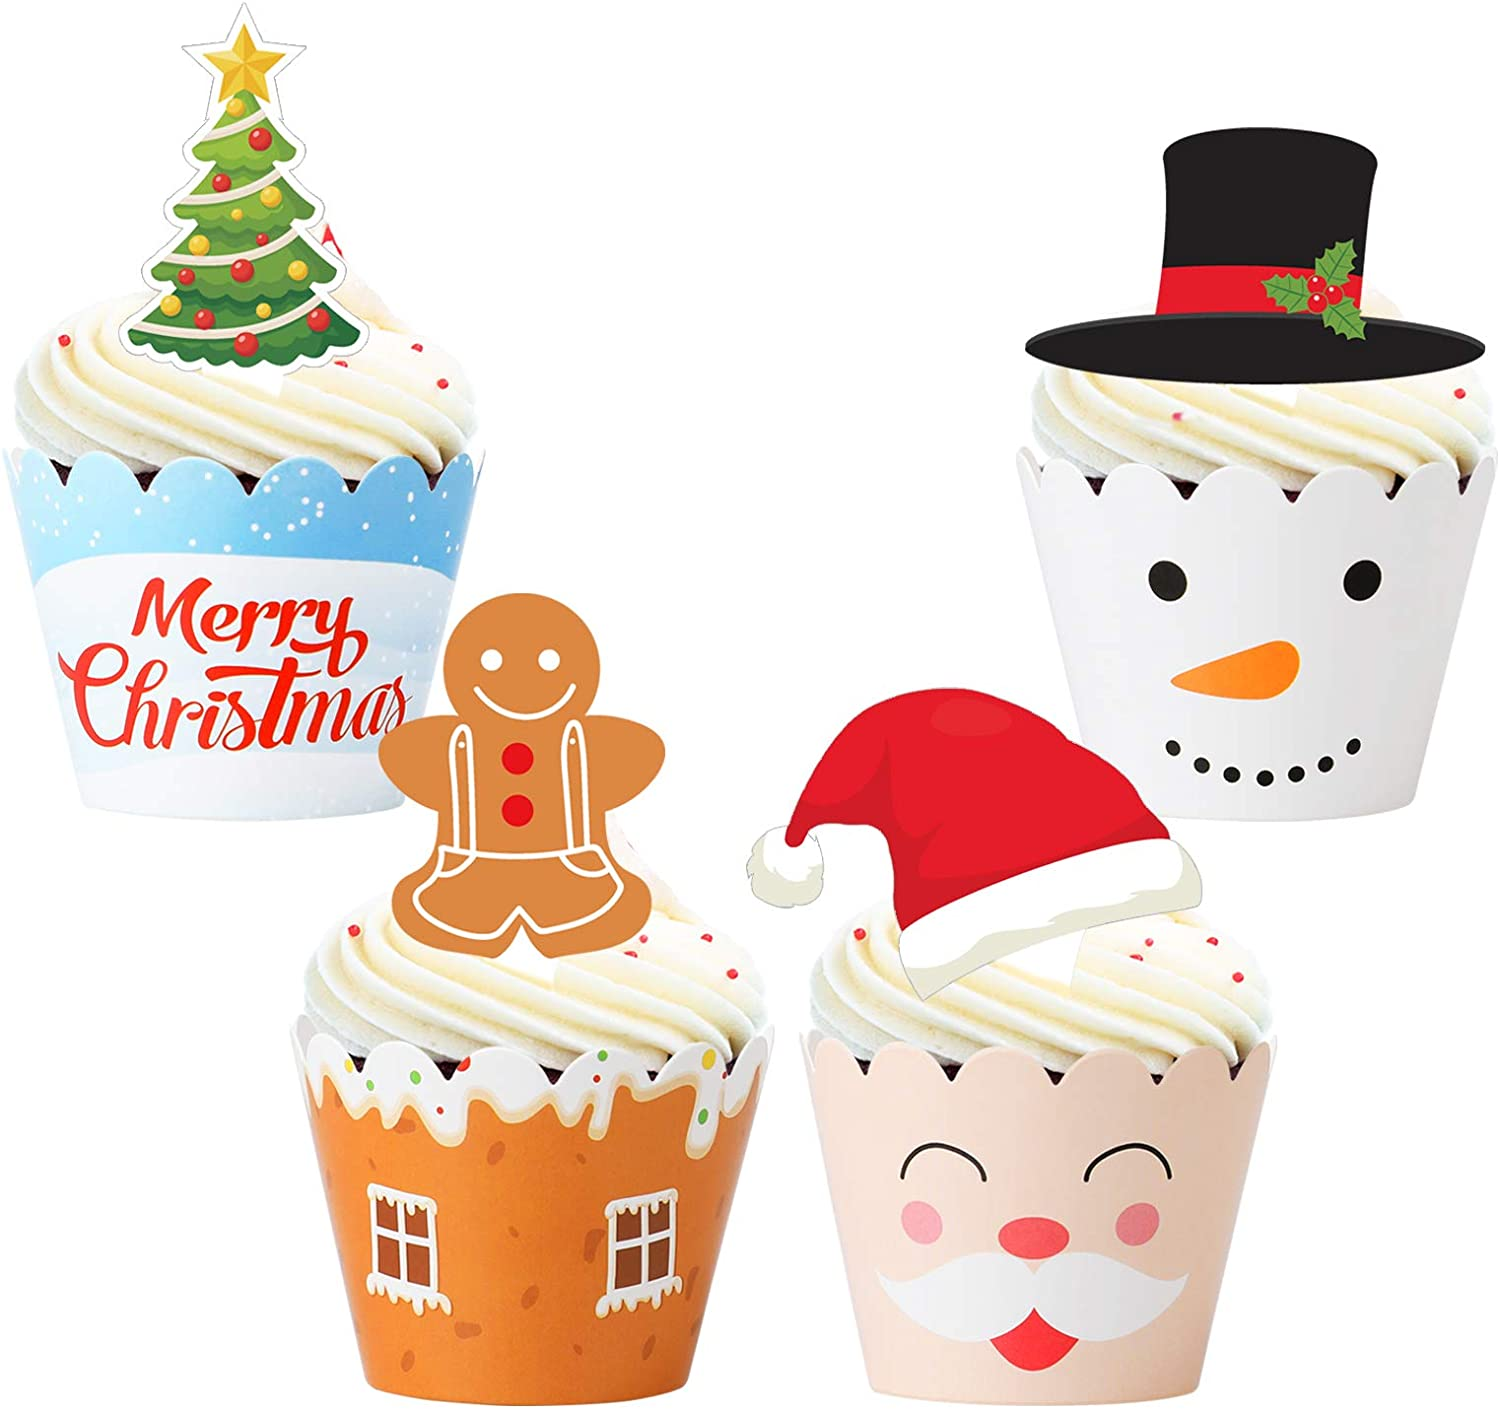 Christmas Cupcake Toppers Wrappers Decorations– Xmas Holiday Party Cake Supplies Decors - Snowman/Santa Claus/Gingerbread/Tree